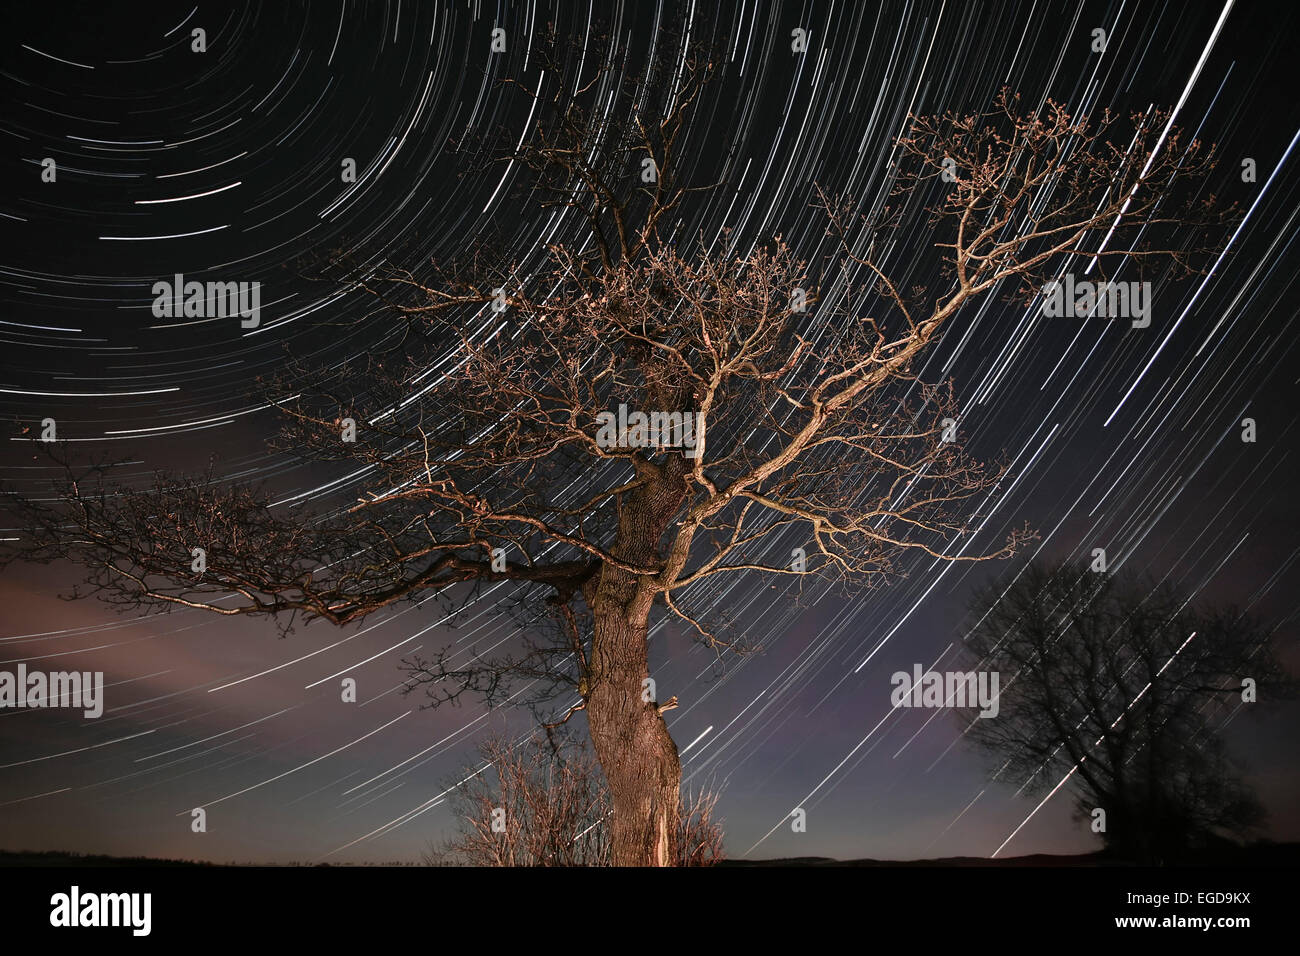 Star trails on a clear night with a mighty oak in foreground, Erzgebirge, Saxony, Germany - Stock Image